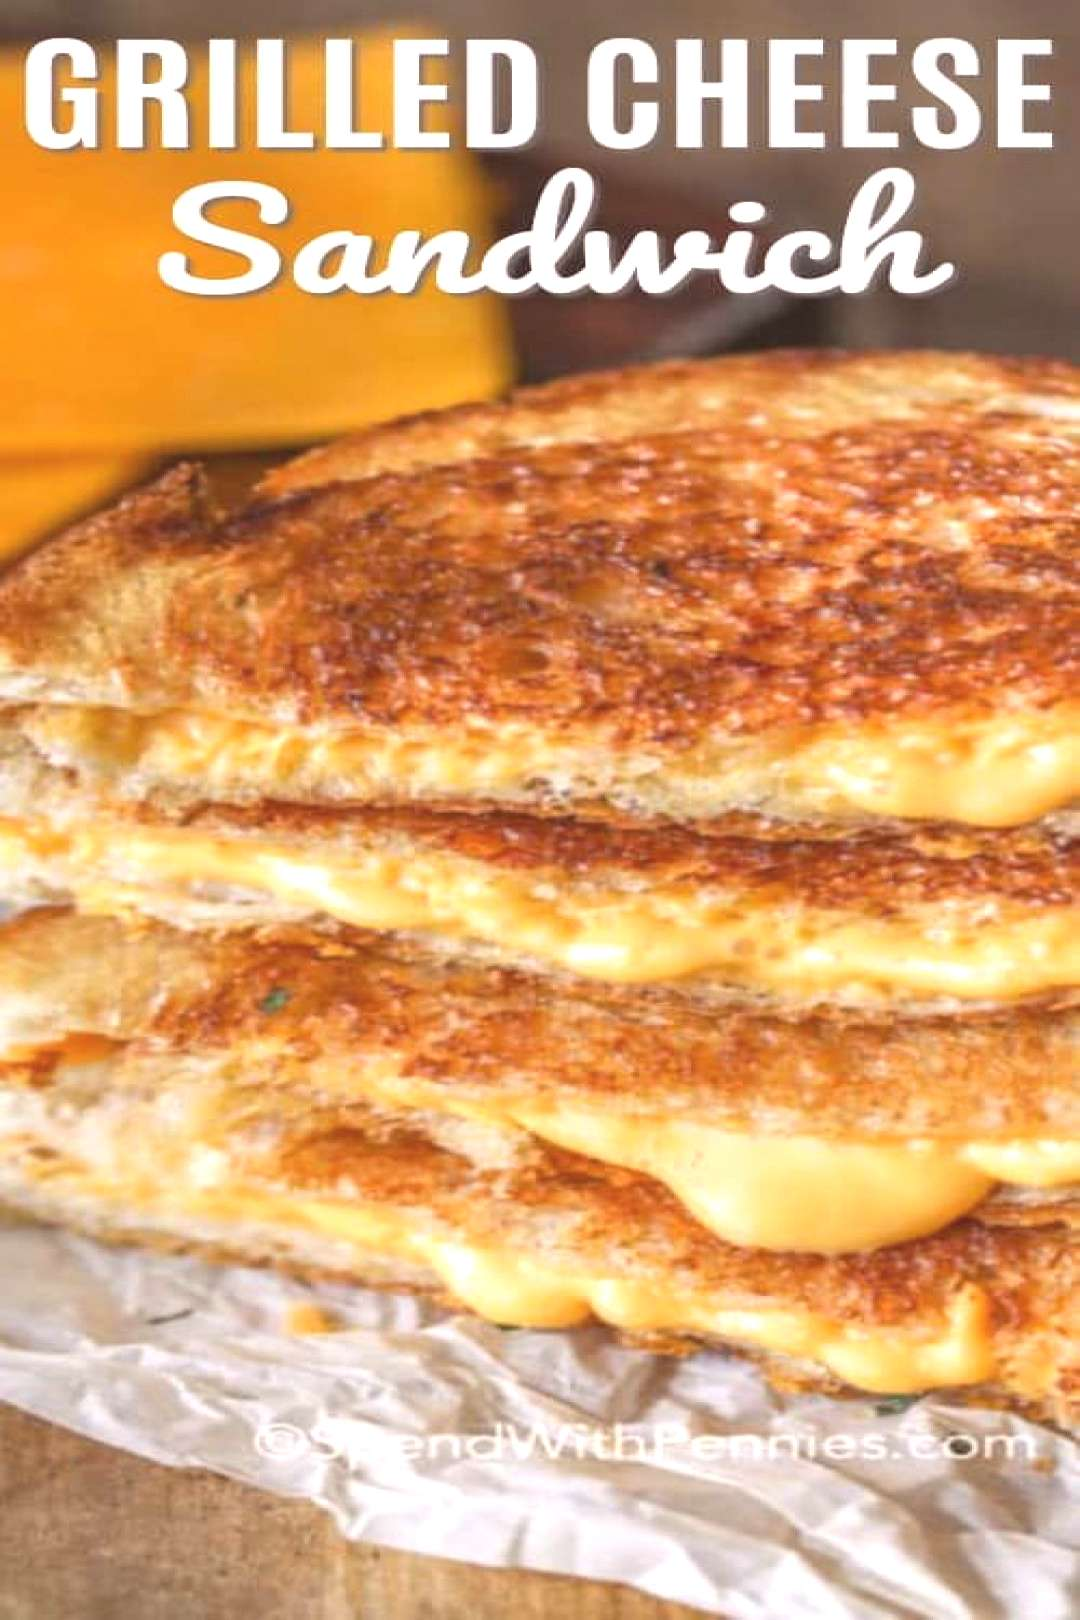 The Best Grilled Cheese Sandwich - Spend With Pennies The Best Grilled Cheese Sandwich - Spend With